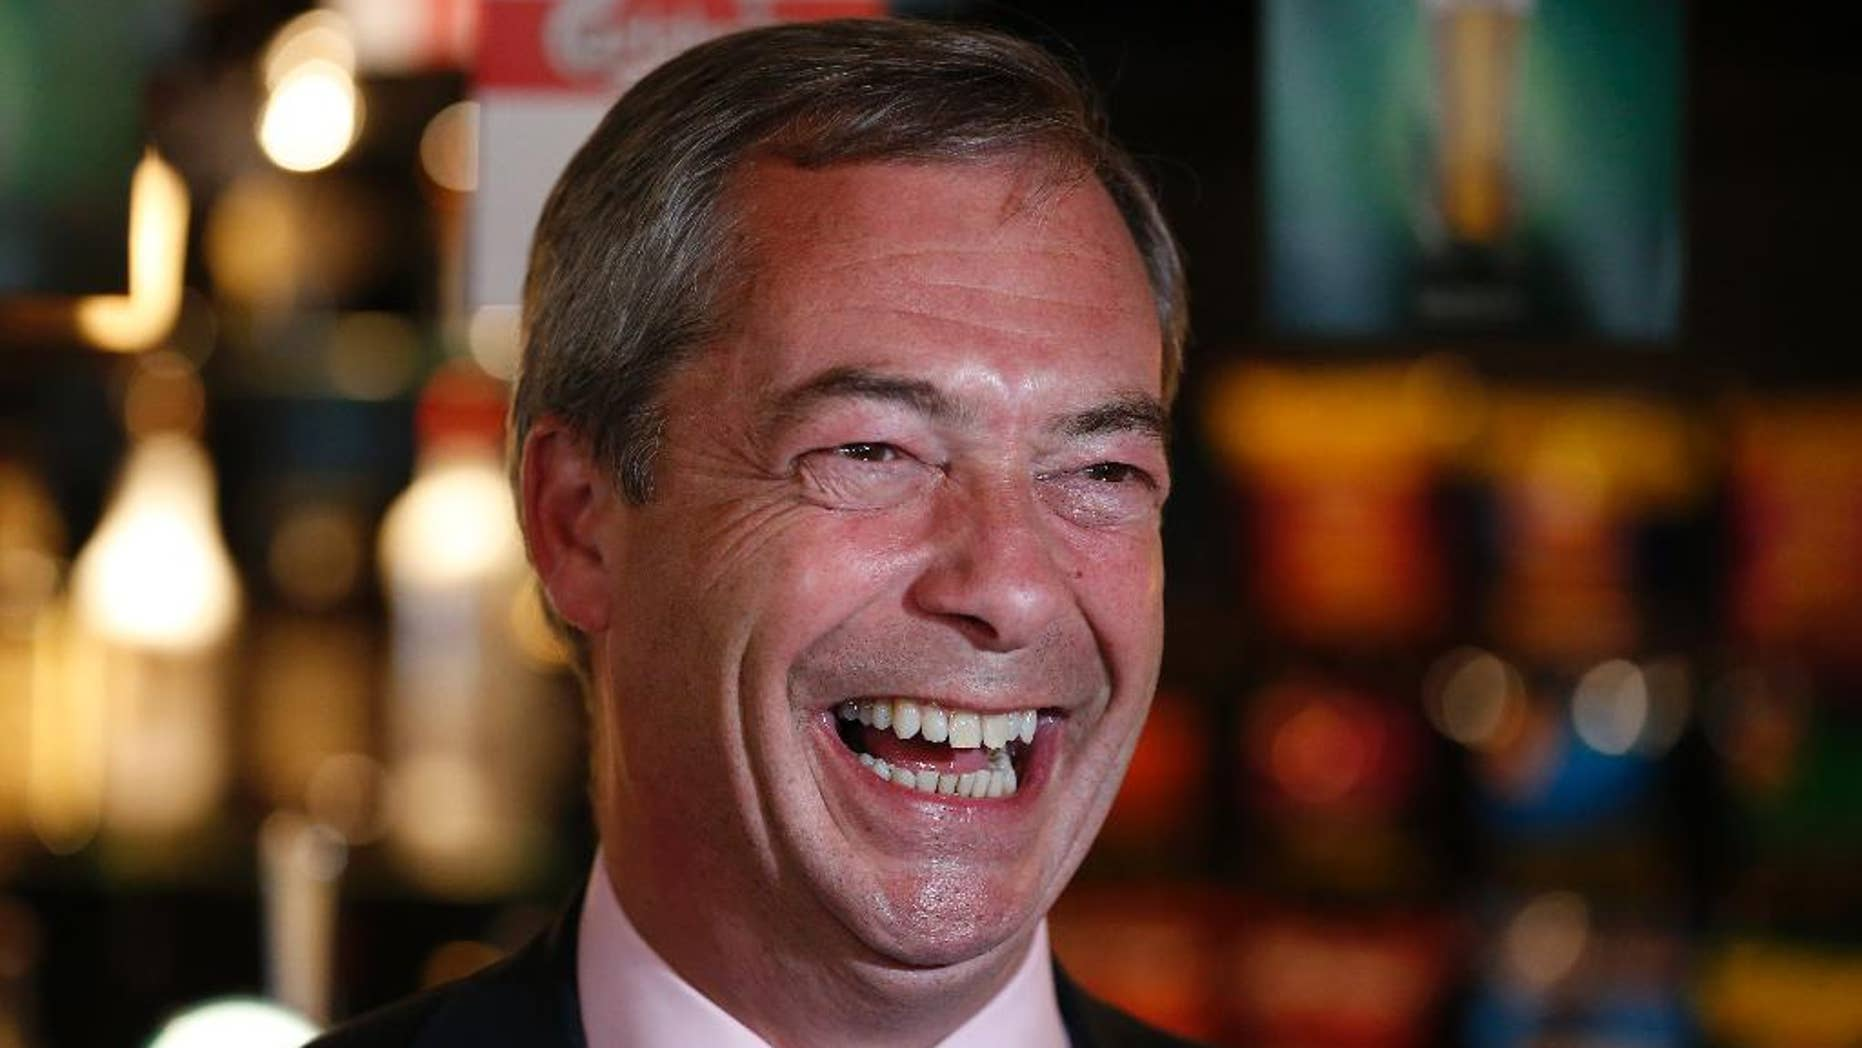 """FILE - In this Friday, May 23, 2014 file photo, Nigel Farage, leader of Britain's United Kingdom Independence Party (UKIP) smiles at a pub in South Benfleet, England. British politician Nigel Farage has defended a hotel that insisted a breast-feeding mother cover up, suggesting women might """"sit in the corner"""" while they feed their babies. Farage told LBC radio Friday Dec. 5, 2014 that women should breast-feed """"in a way that is not openly ostentatious."""" (AP Photo/Lefteris Pitarakis, File)"""